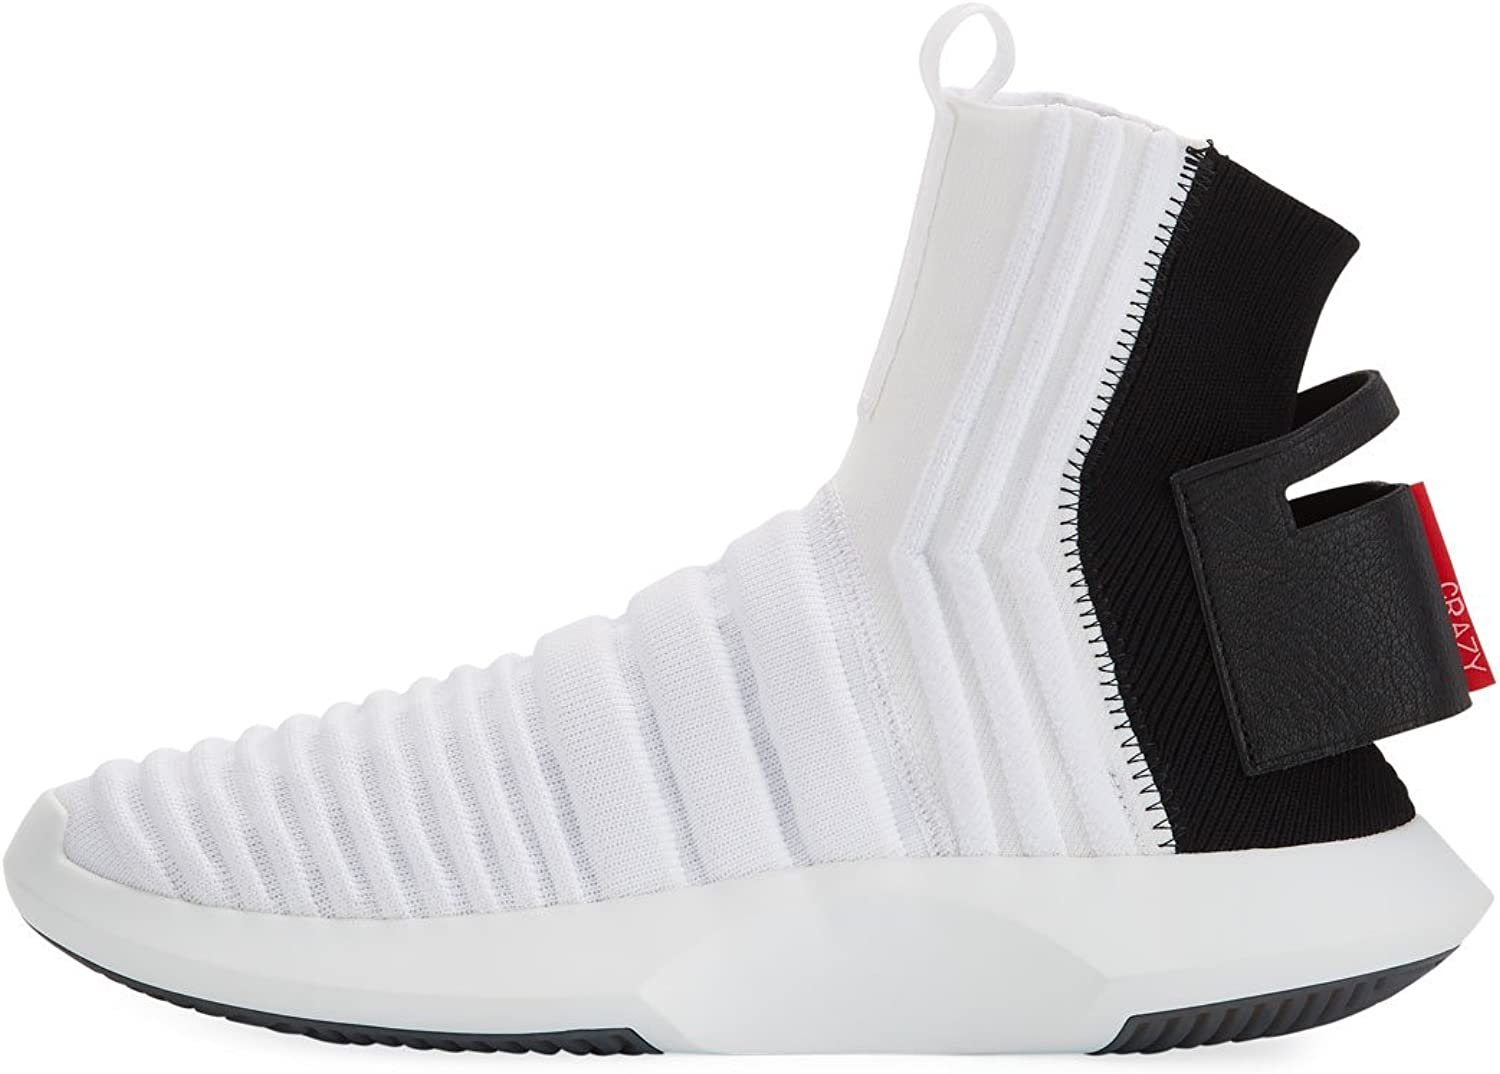 Adidas Originals Men's Crazy 1 Sock PK